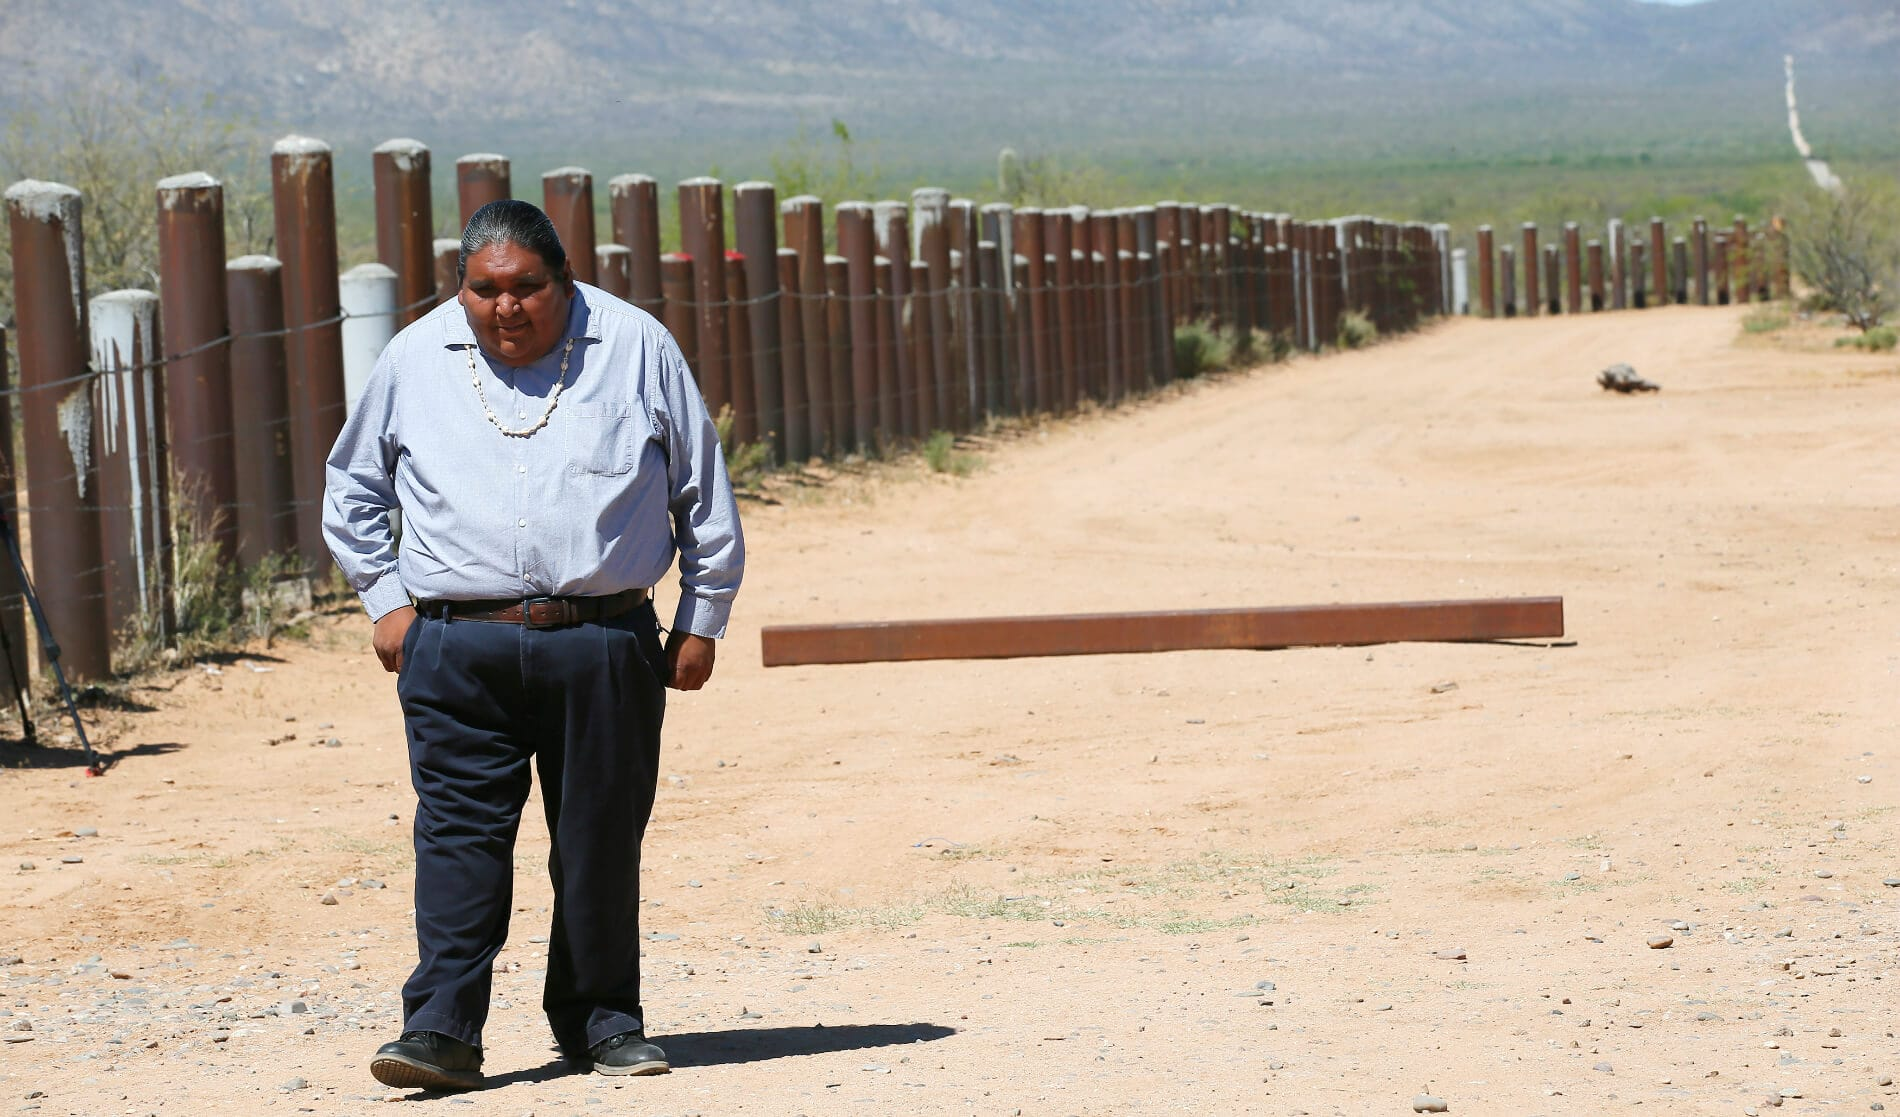 , For Native Americans, US-Mexico border is an 'imaginary line'